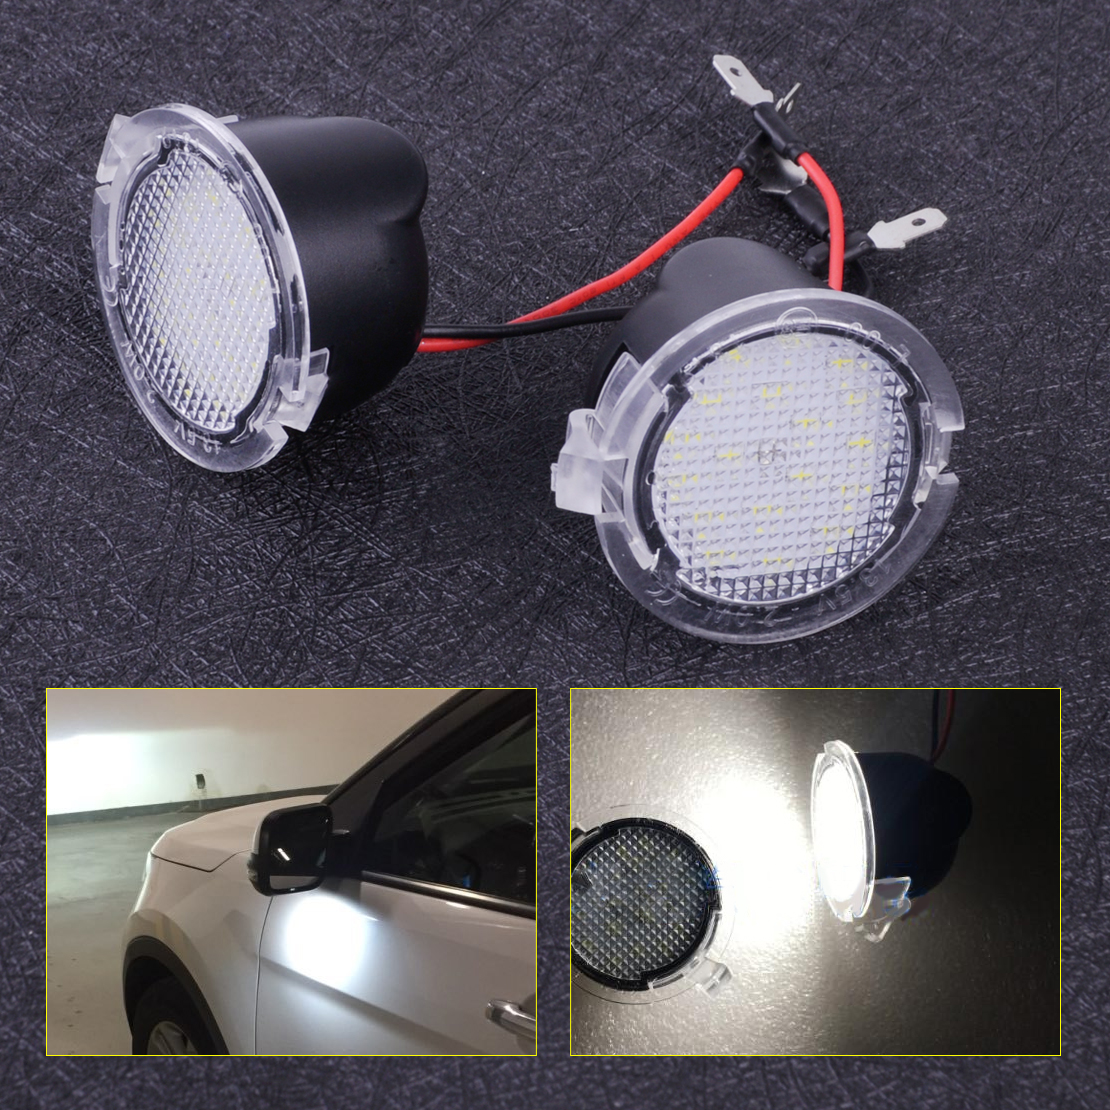 CITALL 2PCS High Power White LED Side Mirror Puddle Lights Fit For Lincoln  Navigator MKS MKT MKZ MKX LS